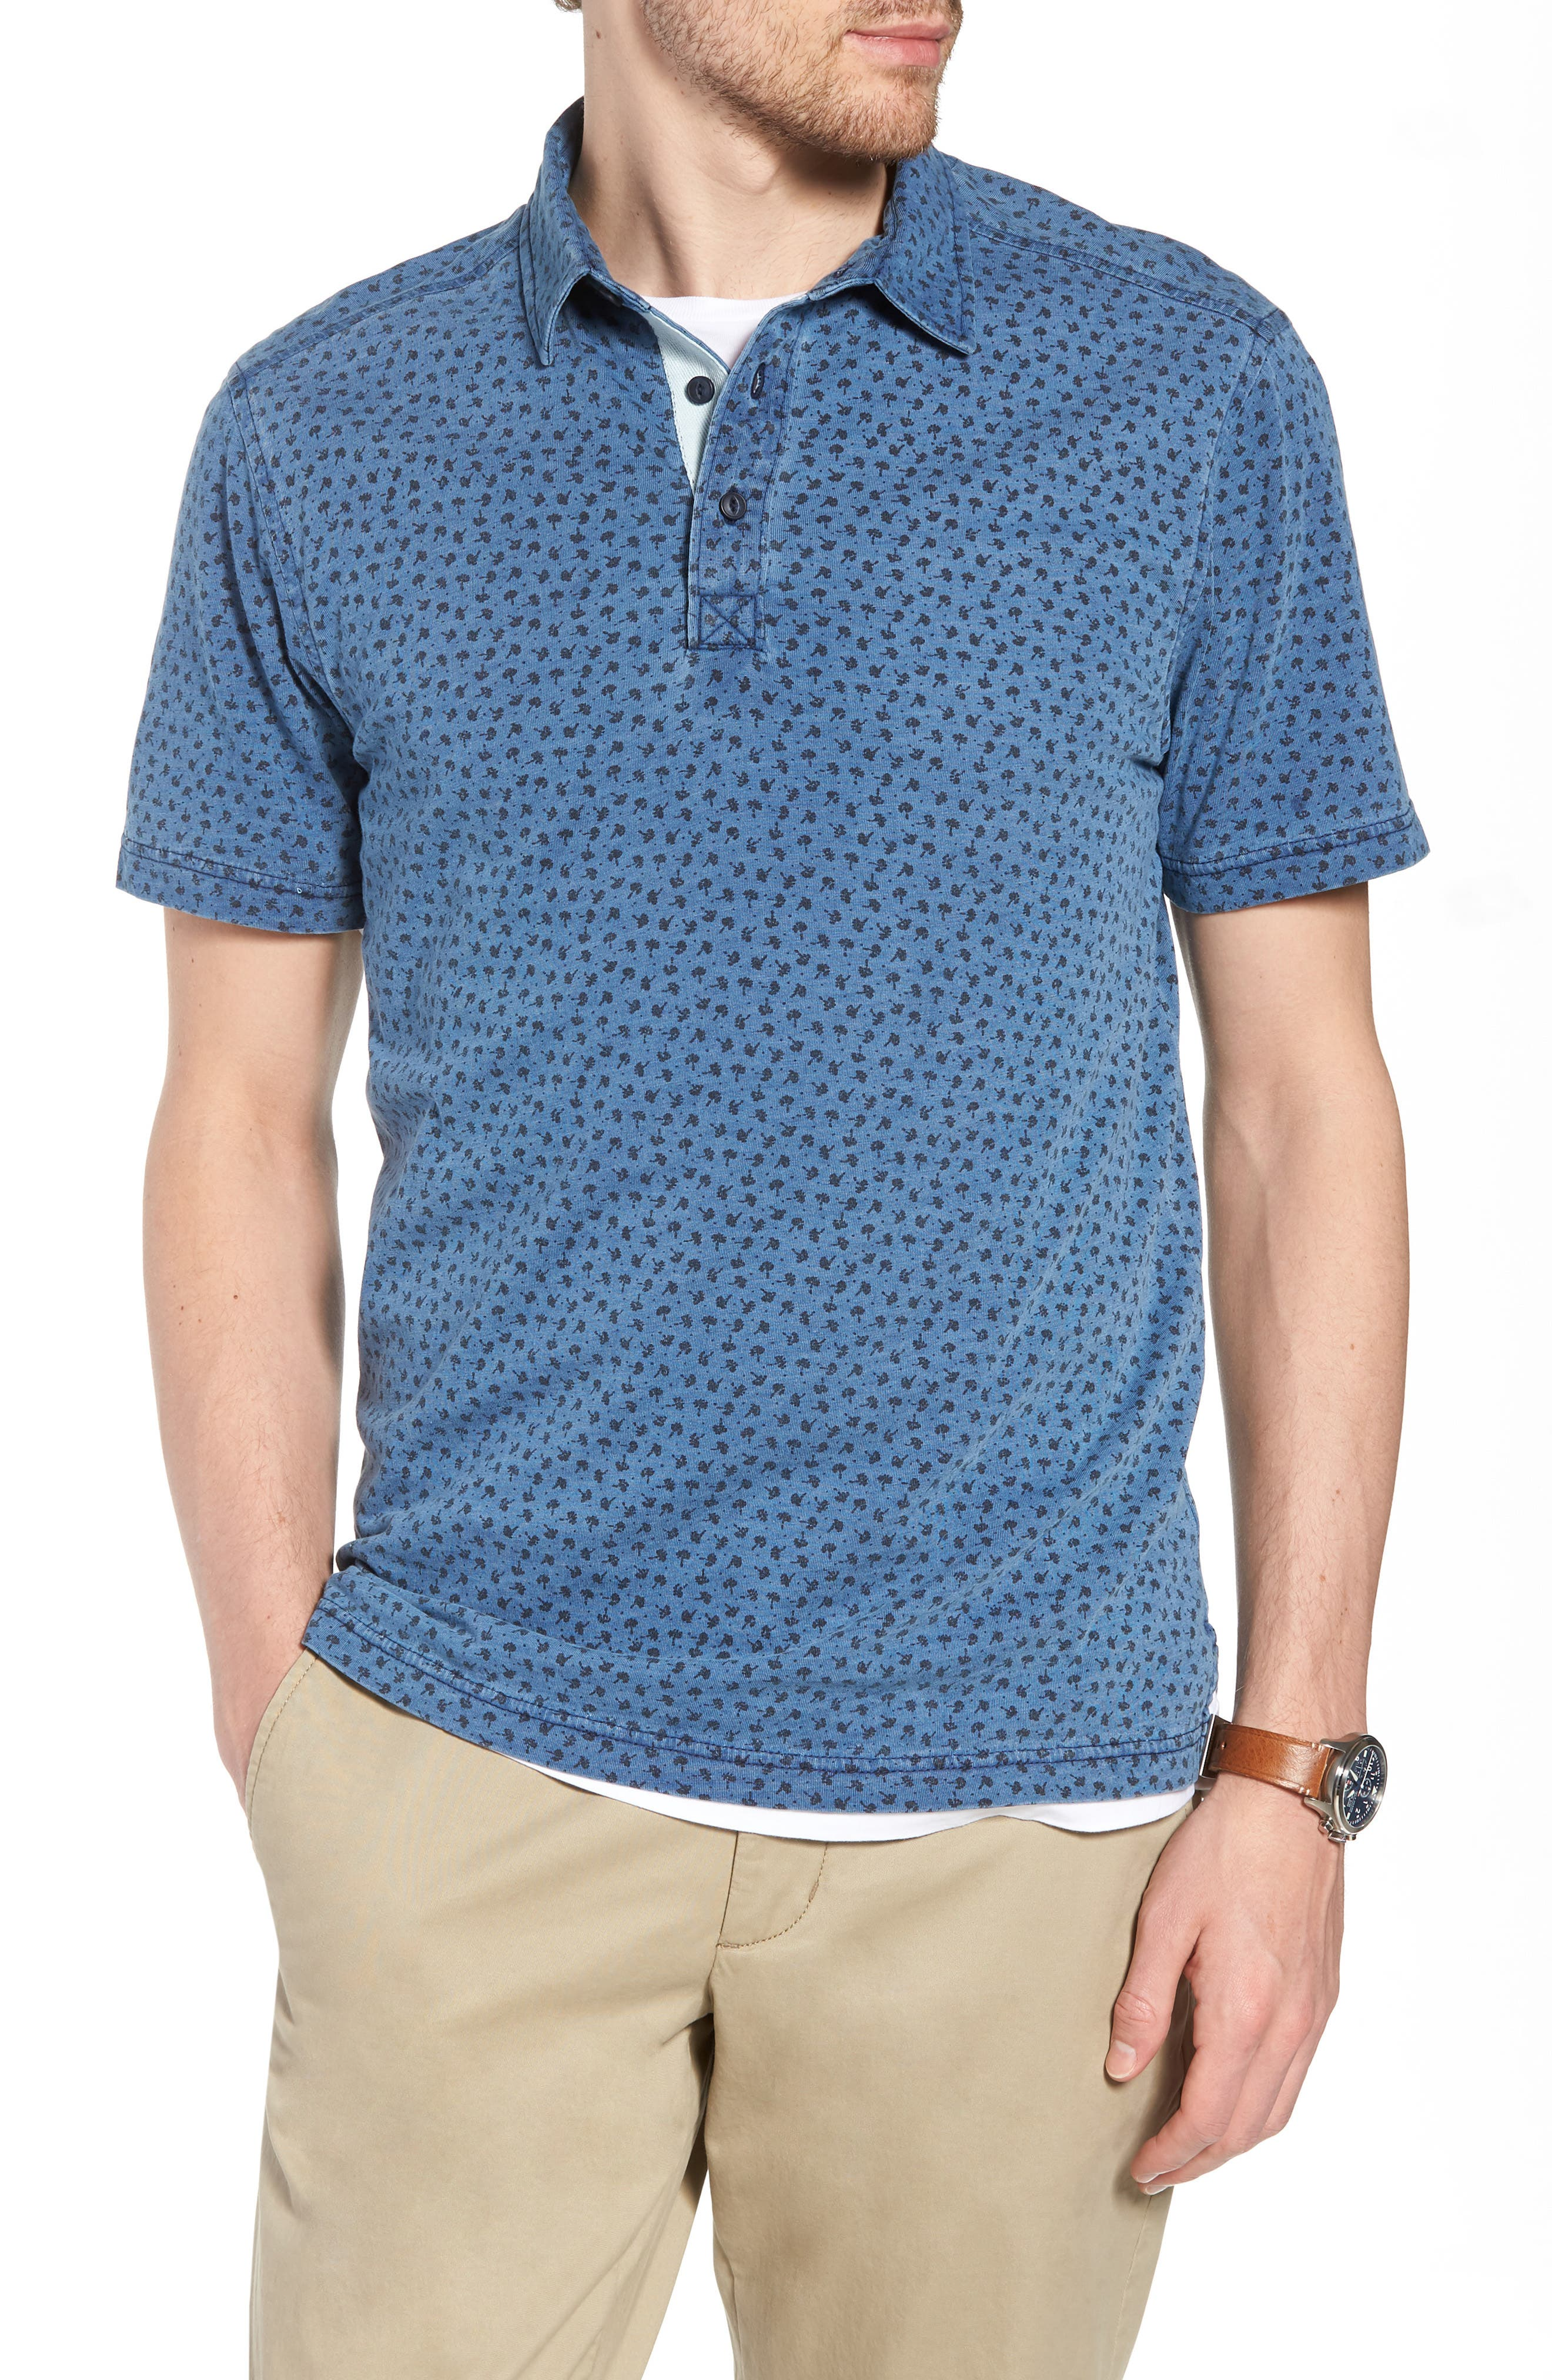 1901 Washed Print Cotton Polo